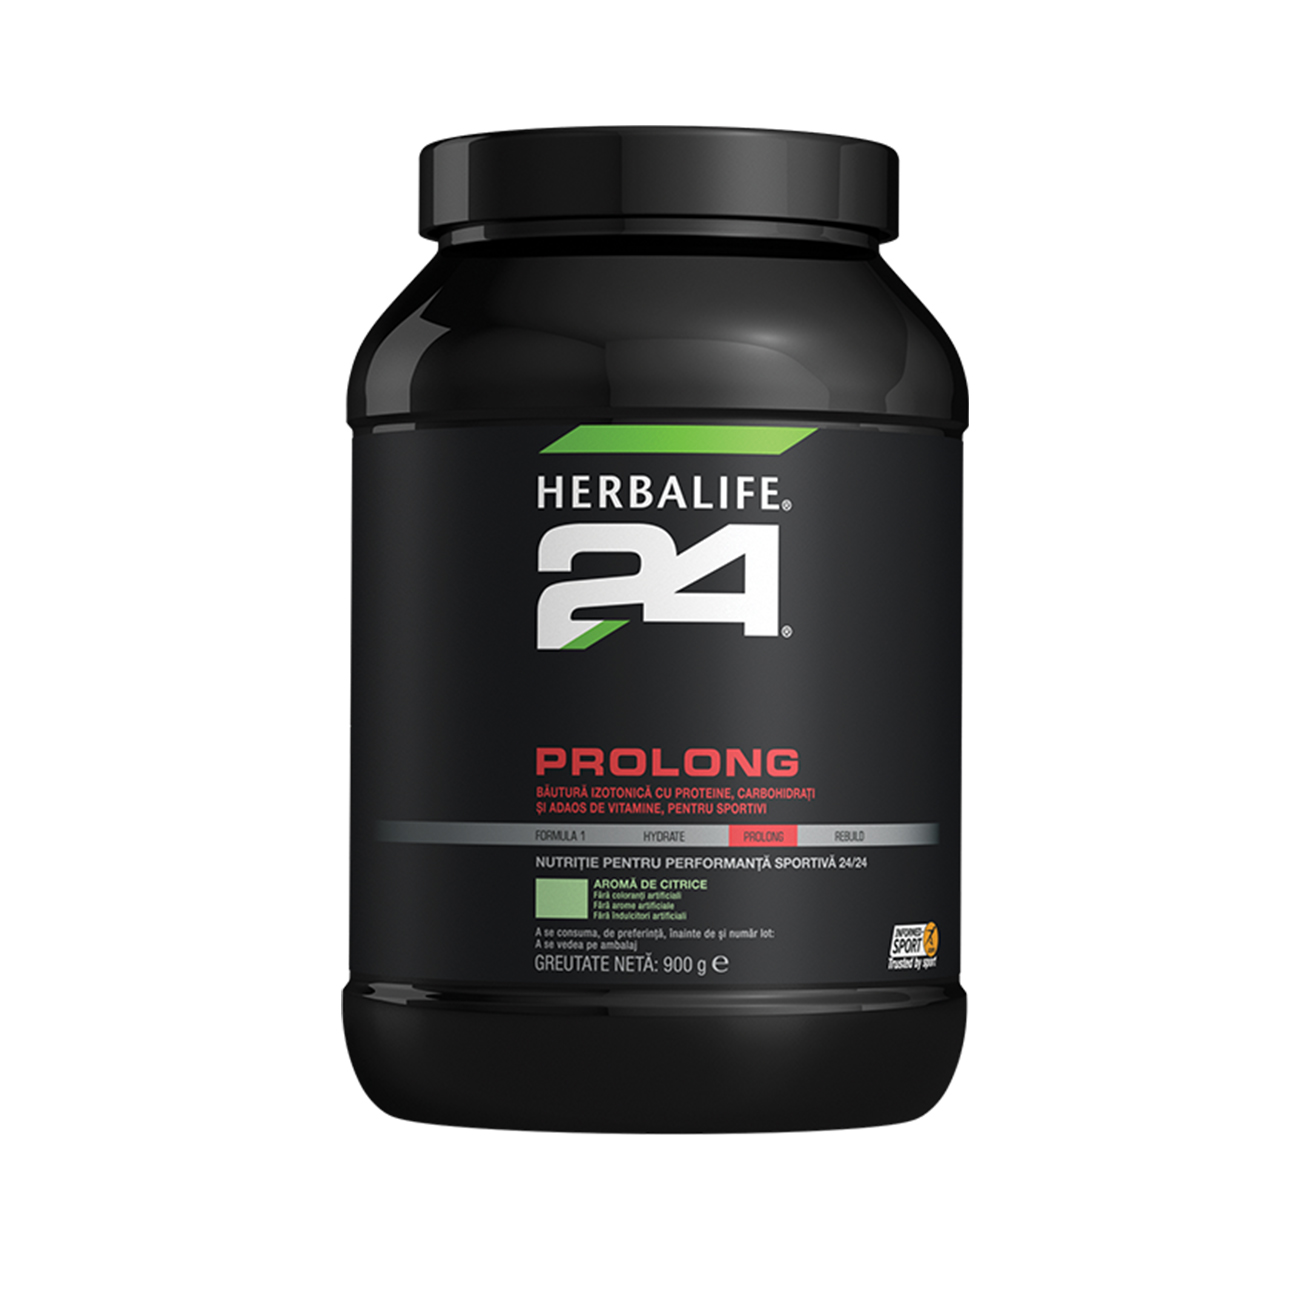 Herbalife24® Prolong Băutură carbo-proteică Citrice product shot